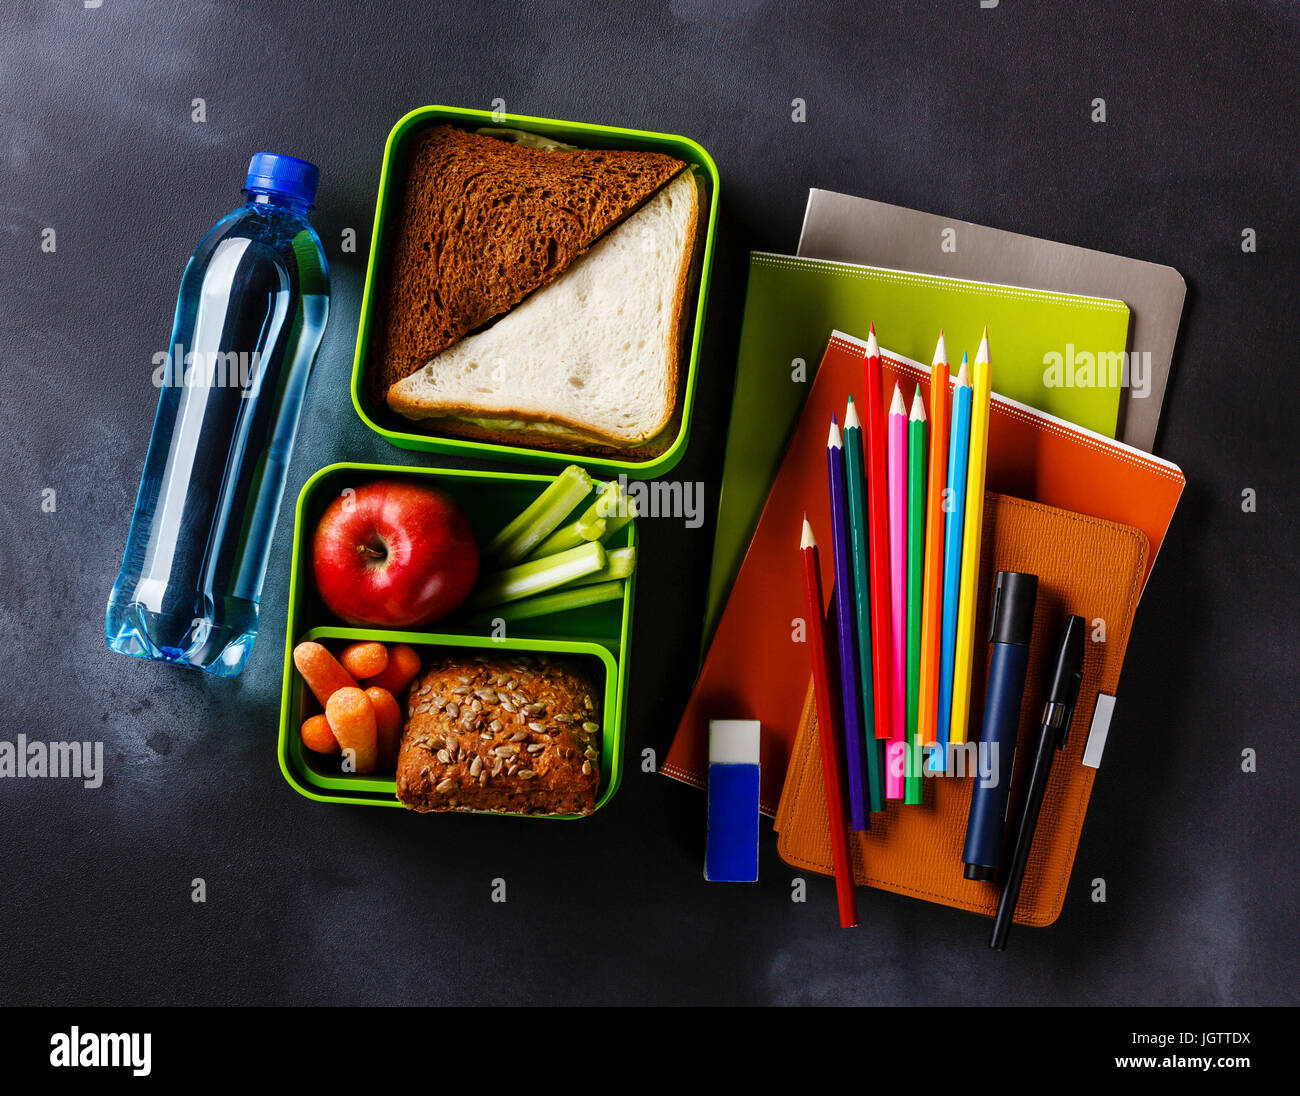 Take out food Lunch box with Sandwiches and vegetables, bottle of water and school supplies - Stock Image